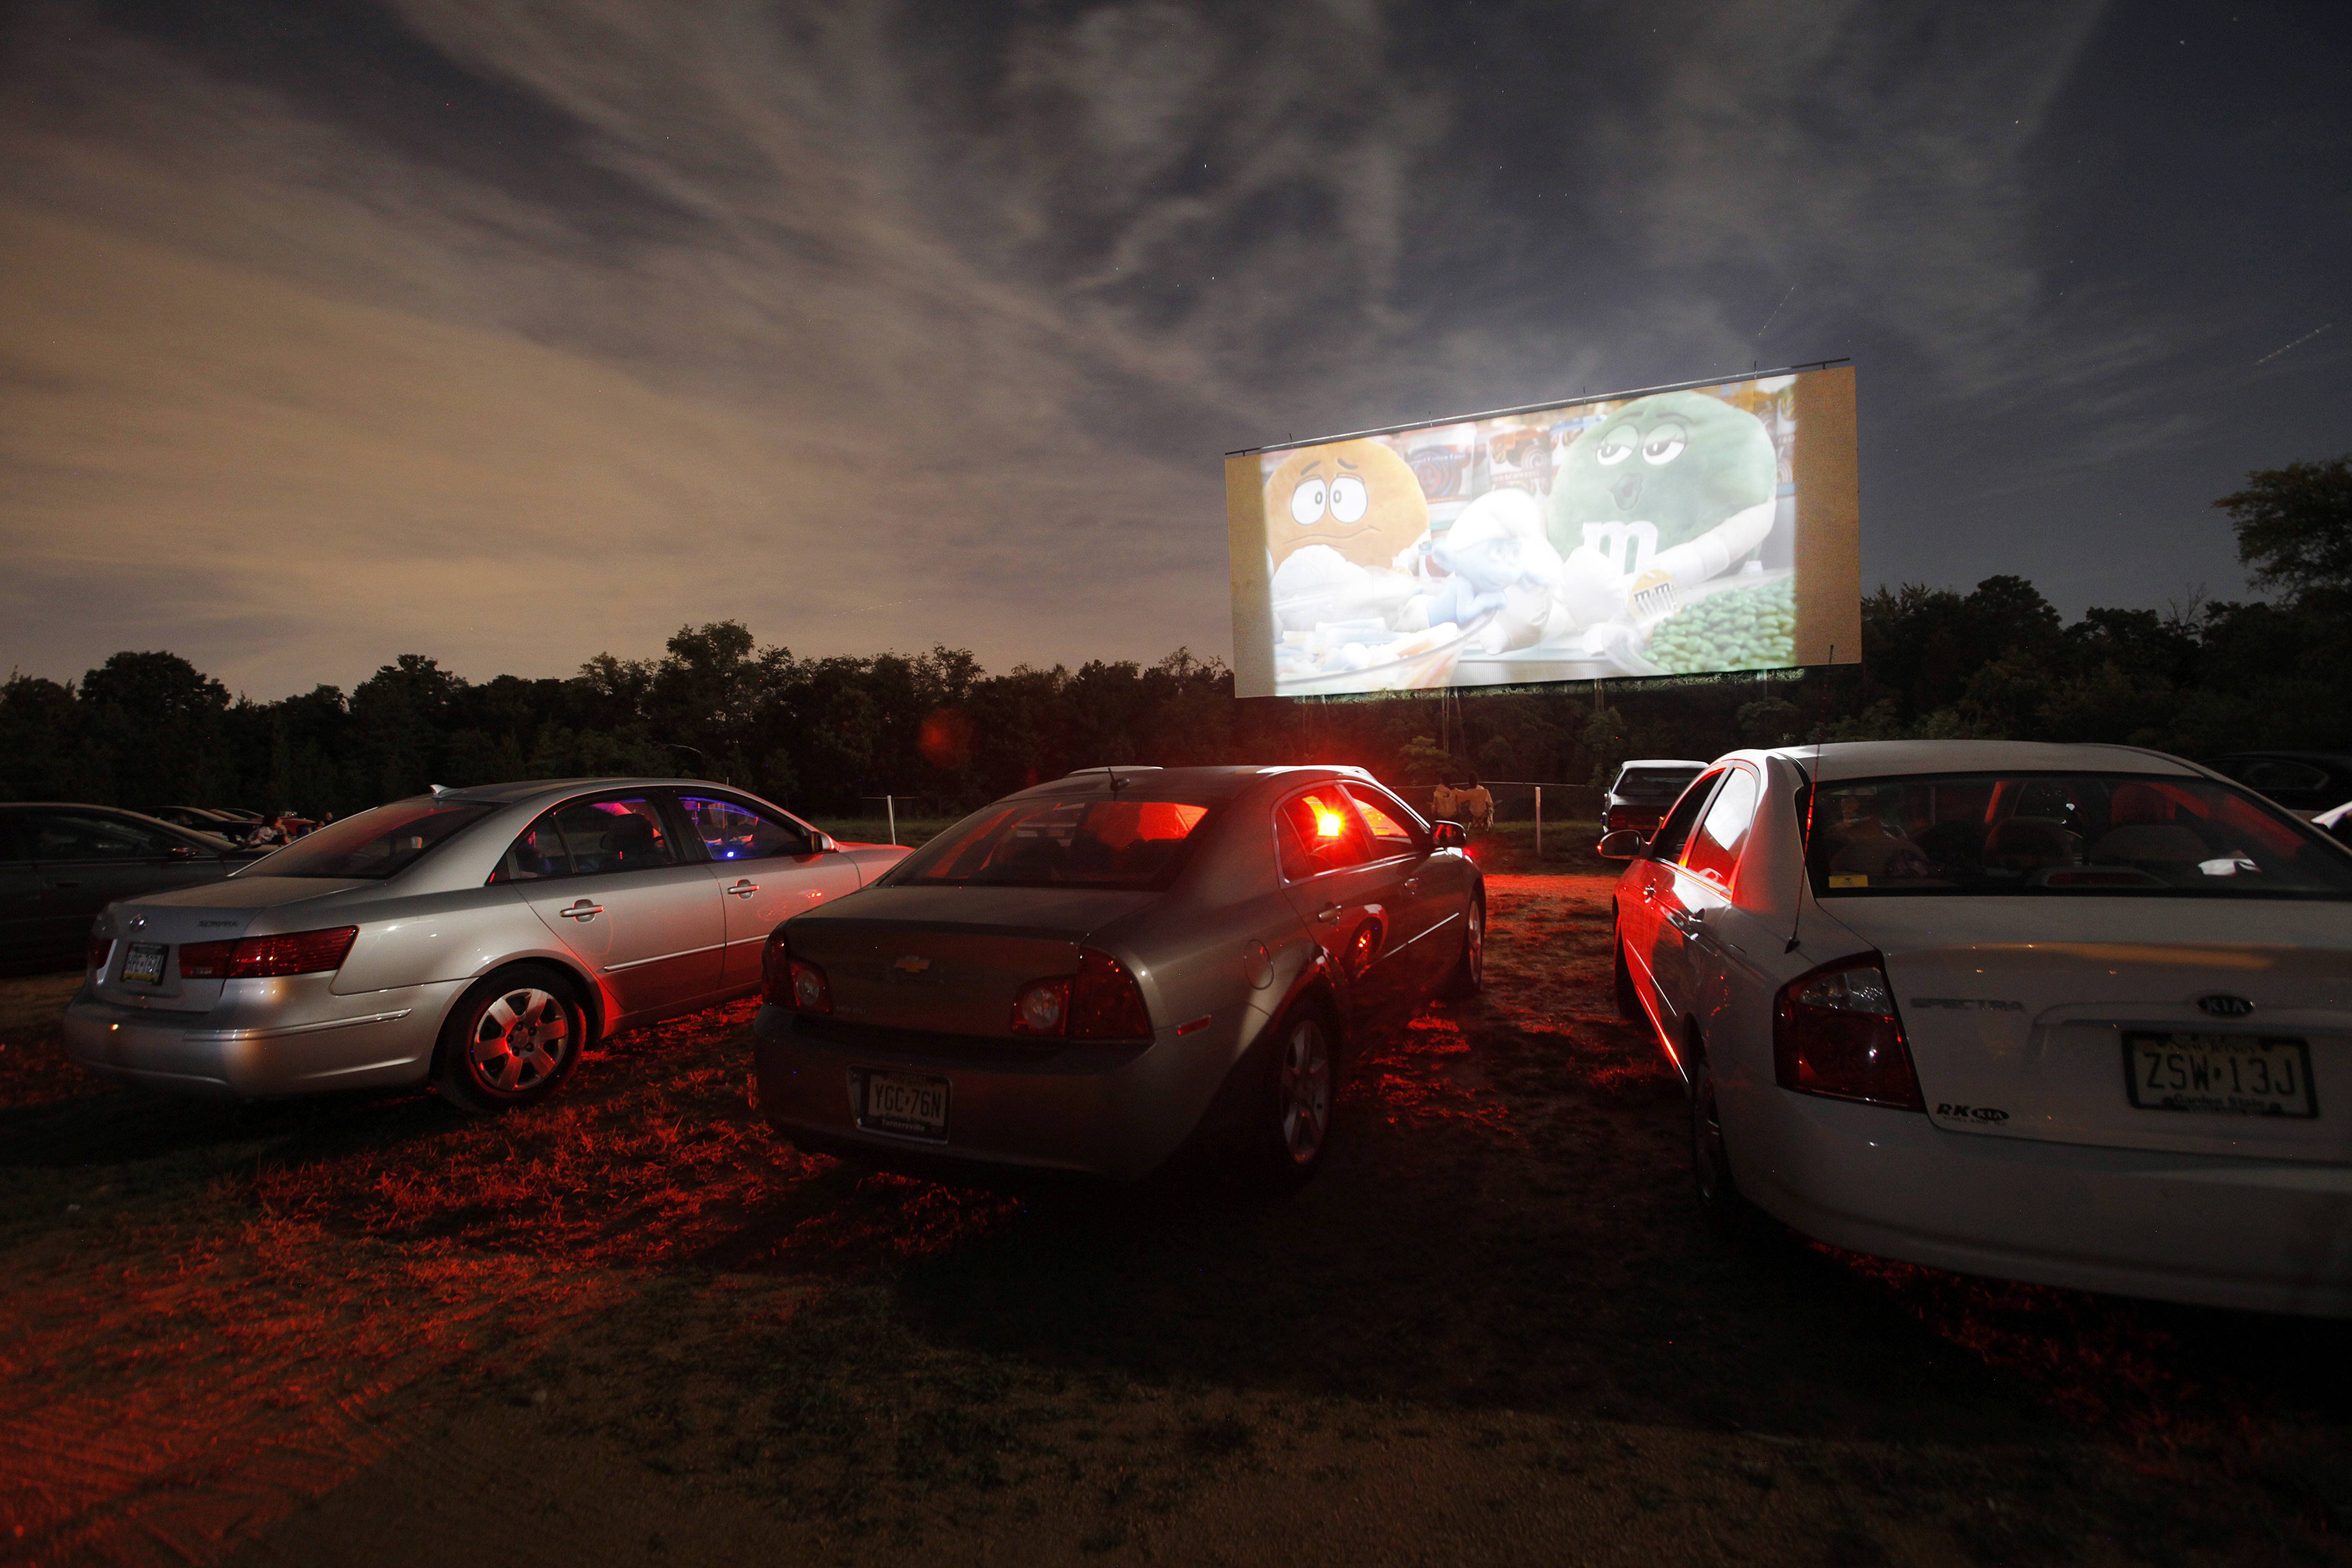 N.J.'s last drive-in theater opens for 2019 season